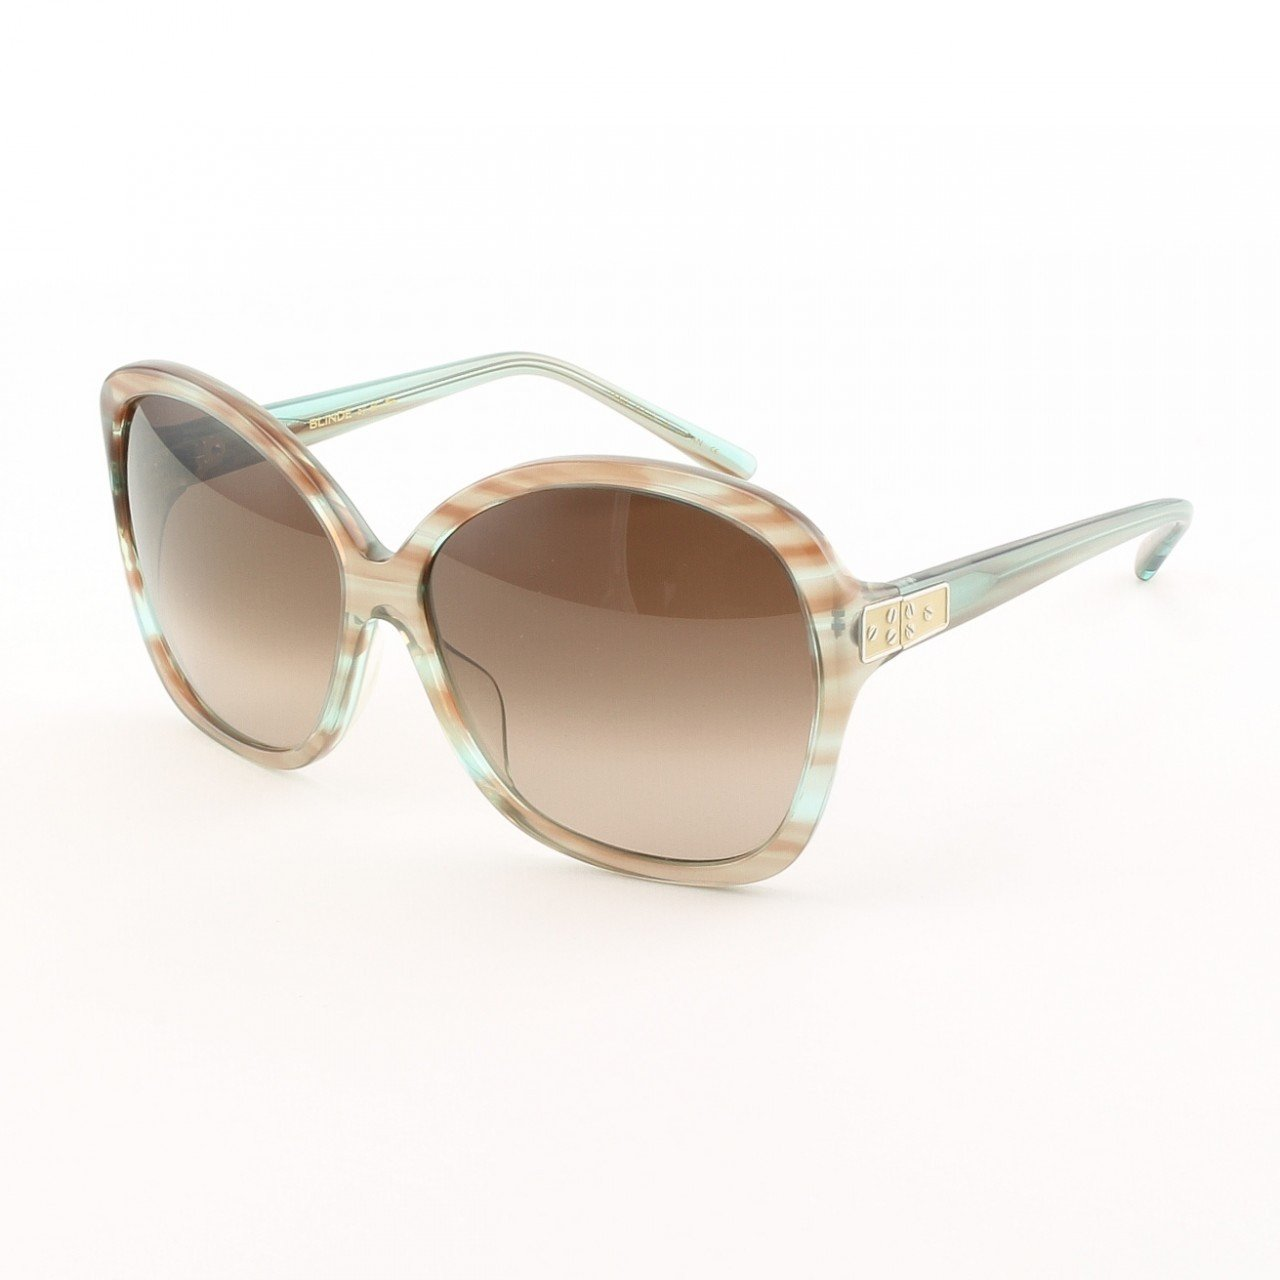 Blinde Now Where Were We Women's Sunglasses Col. Blue Crystal Tortoise with Brown Gradient Lenses